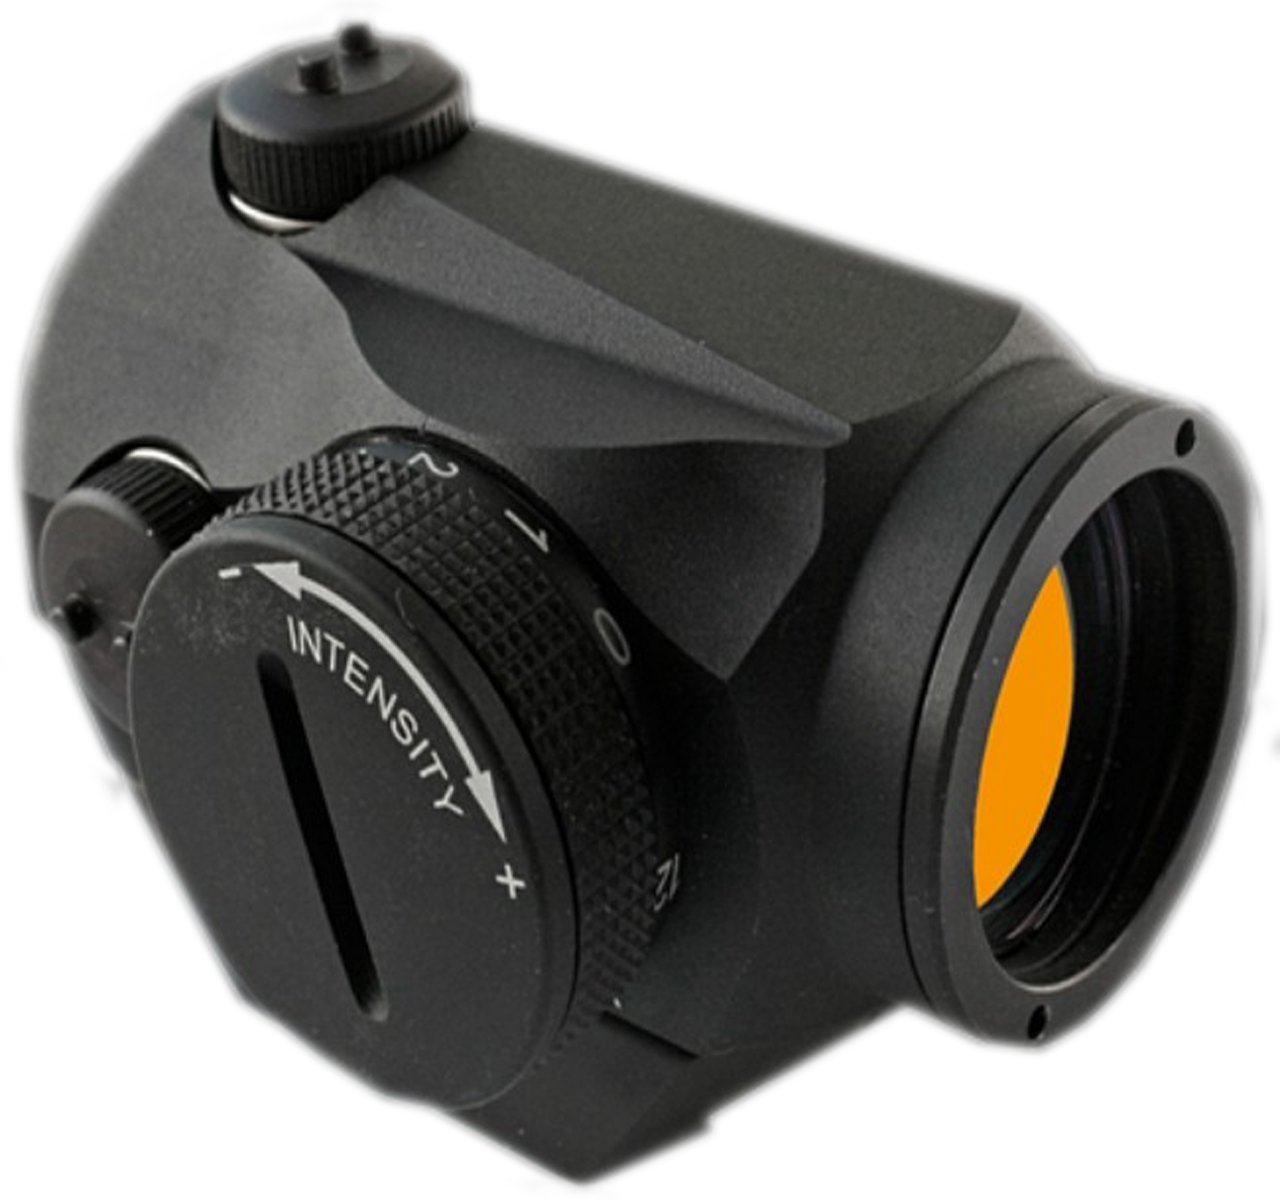 Aimpoint Micro T-1 4 MOA Night Vision Compatible Sight